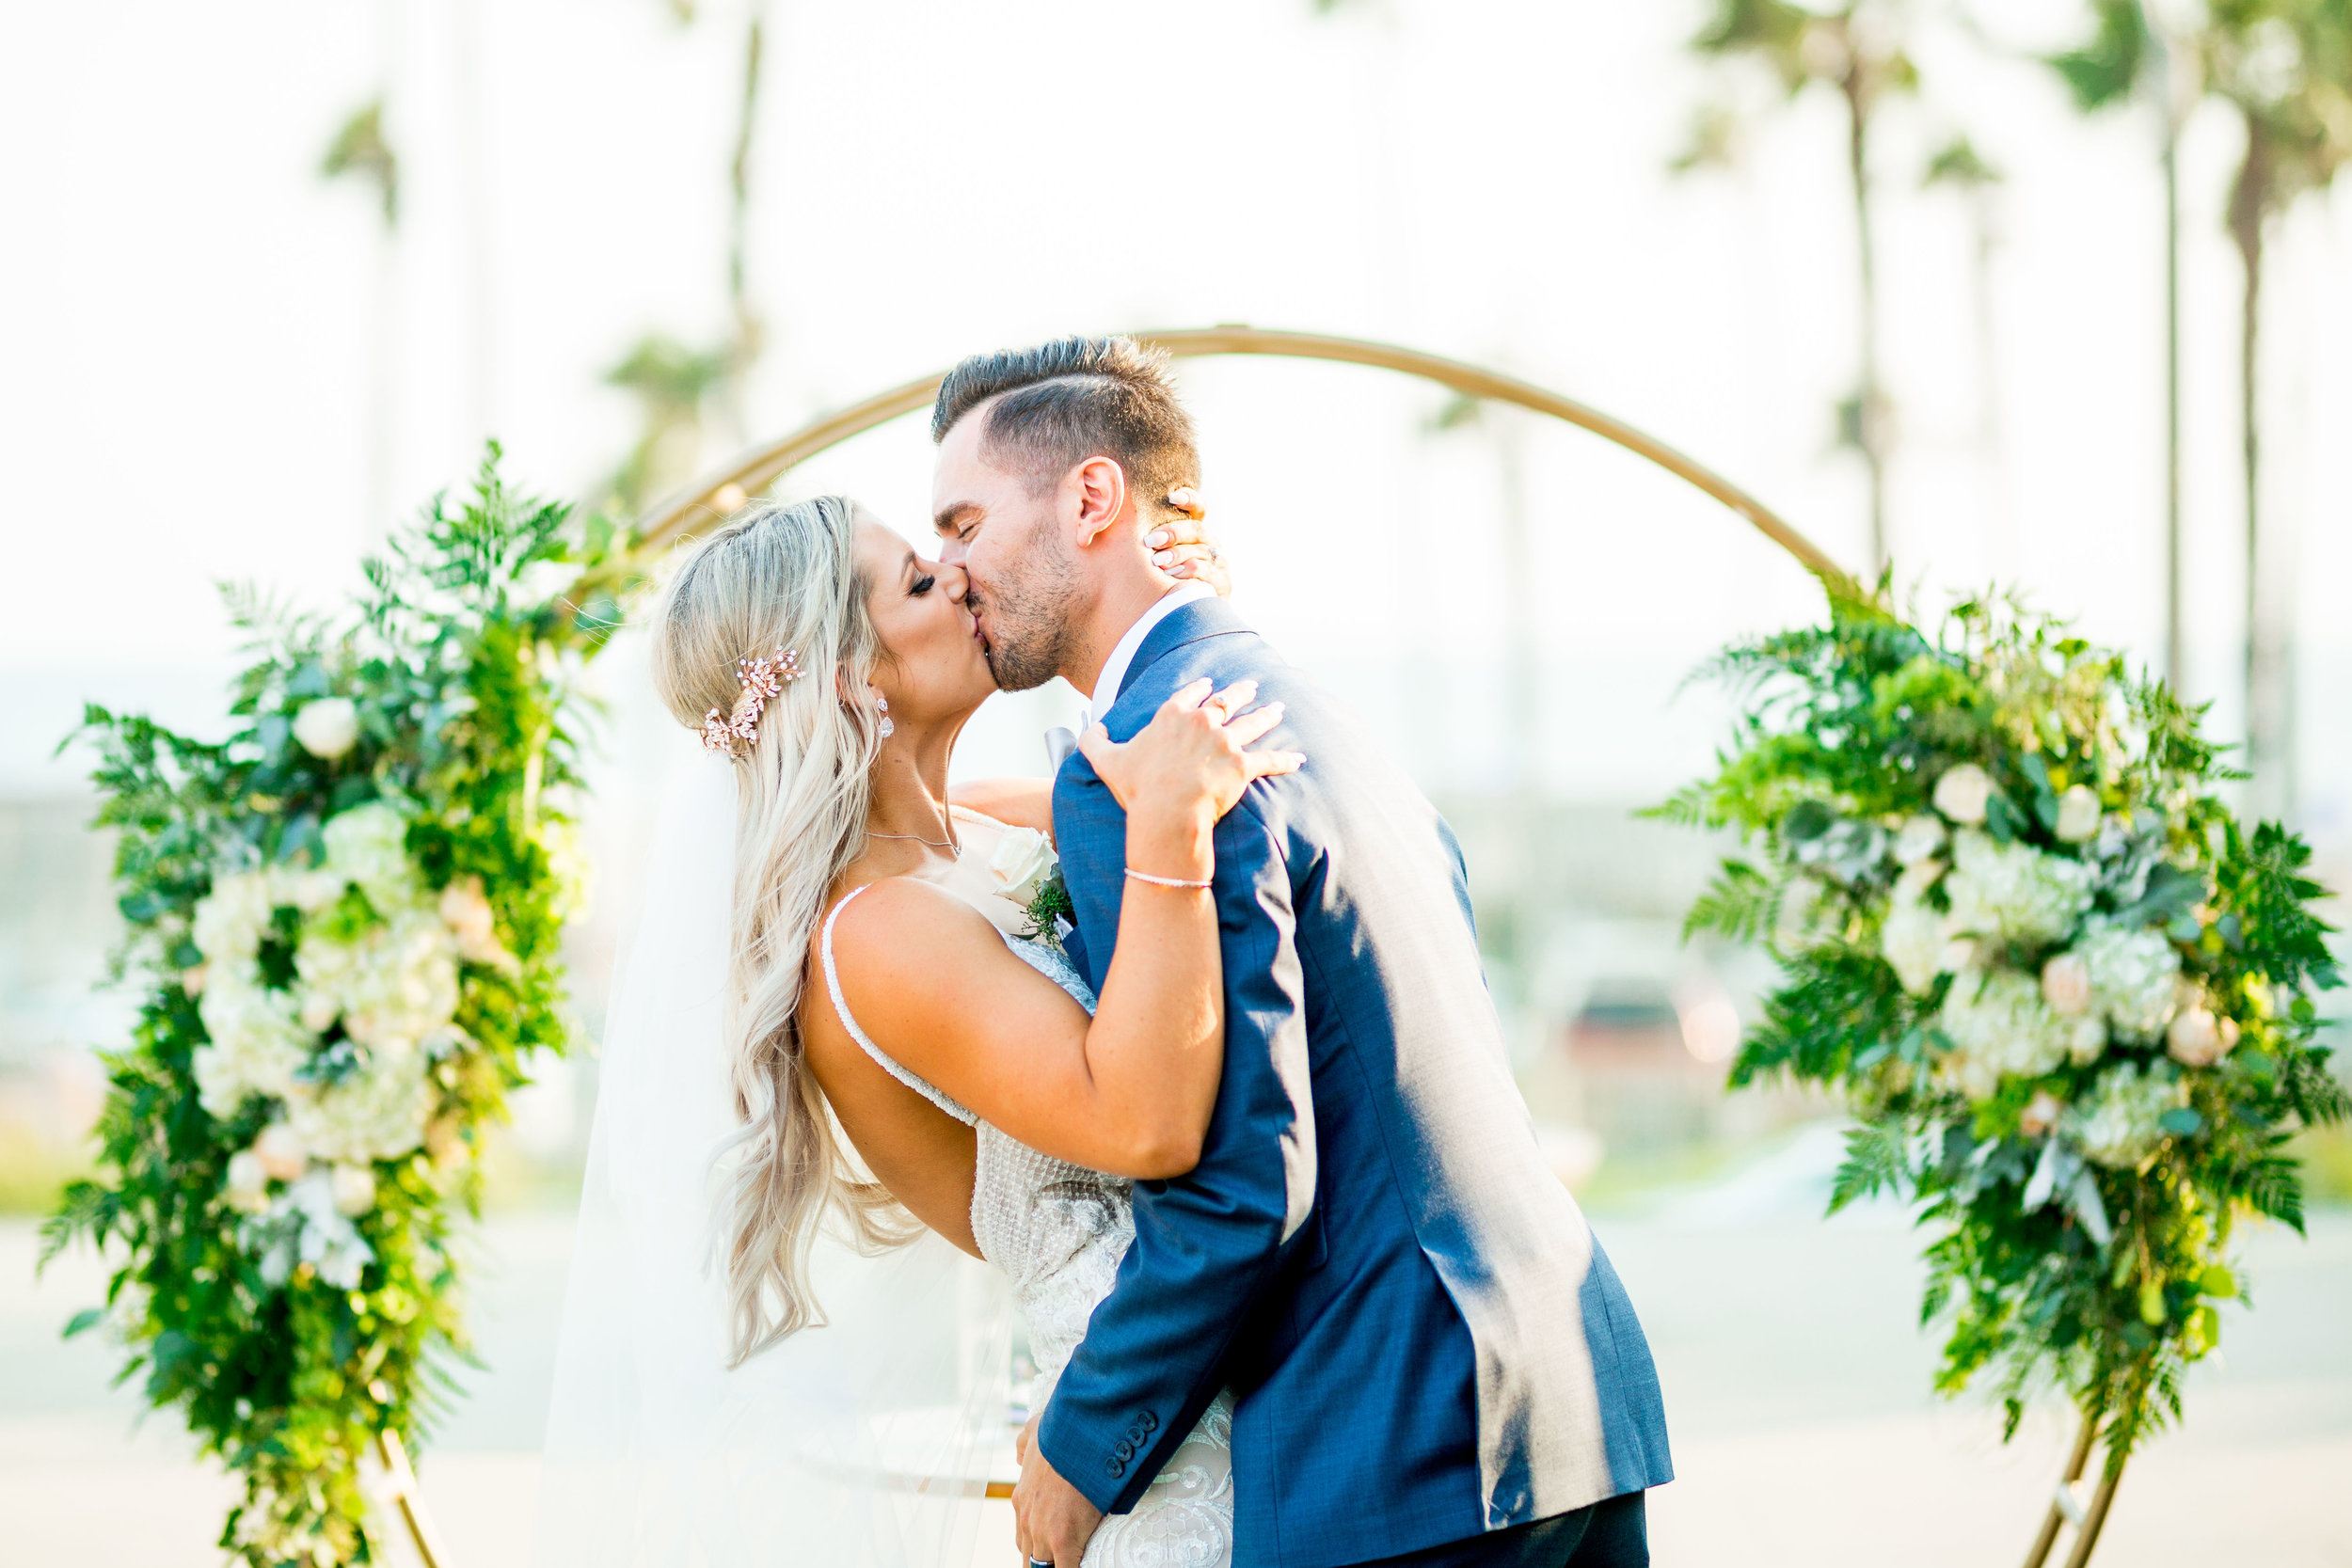 Huntington Beach Orange County Southern California Romantic Fun Rustic Elegant Wedding Engagement Photographer Photography by Glass Woods Media 8.jpg